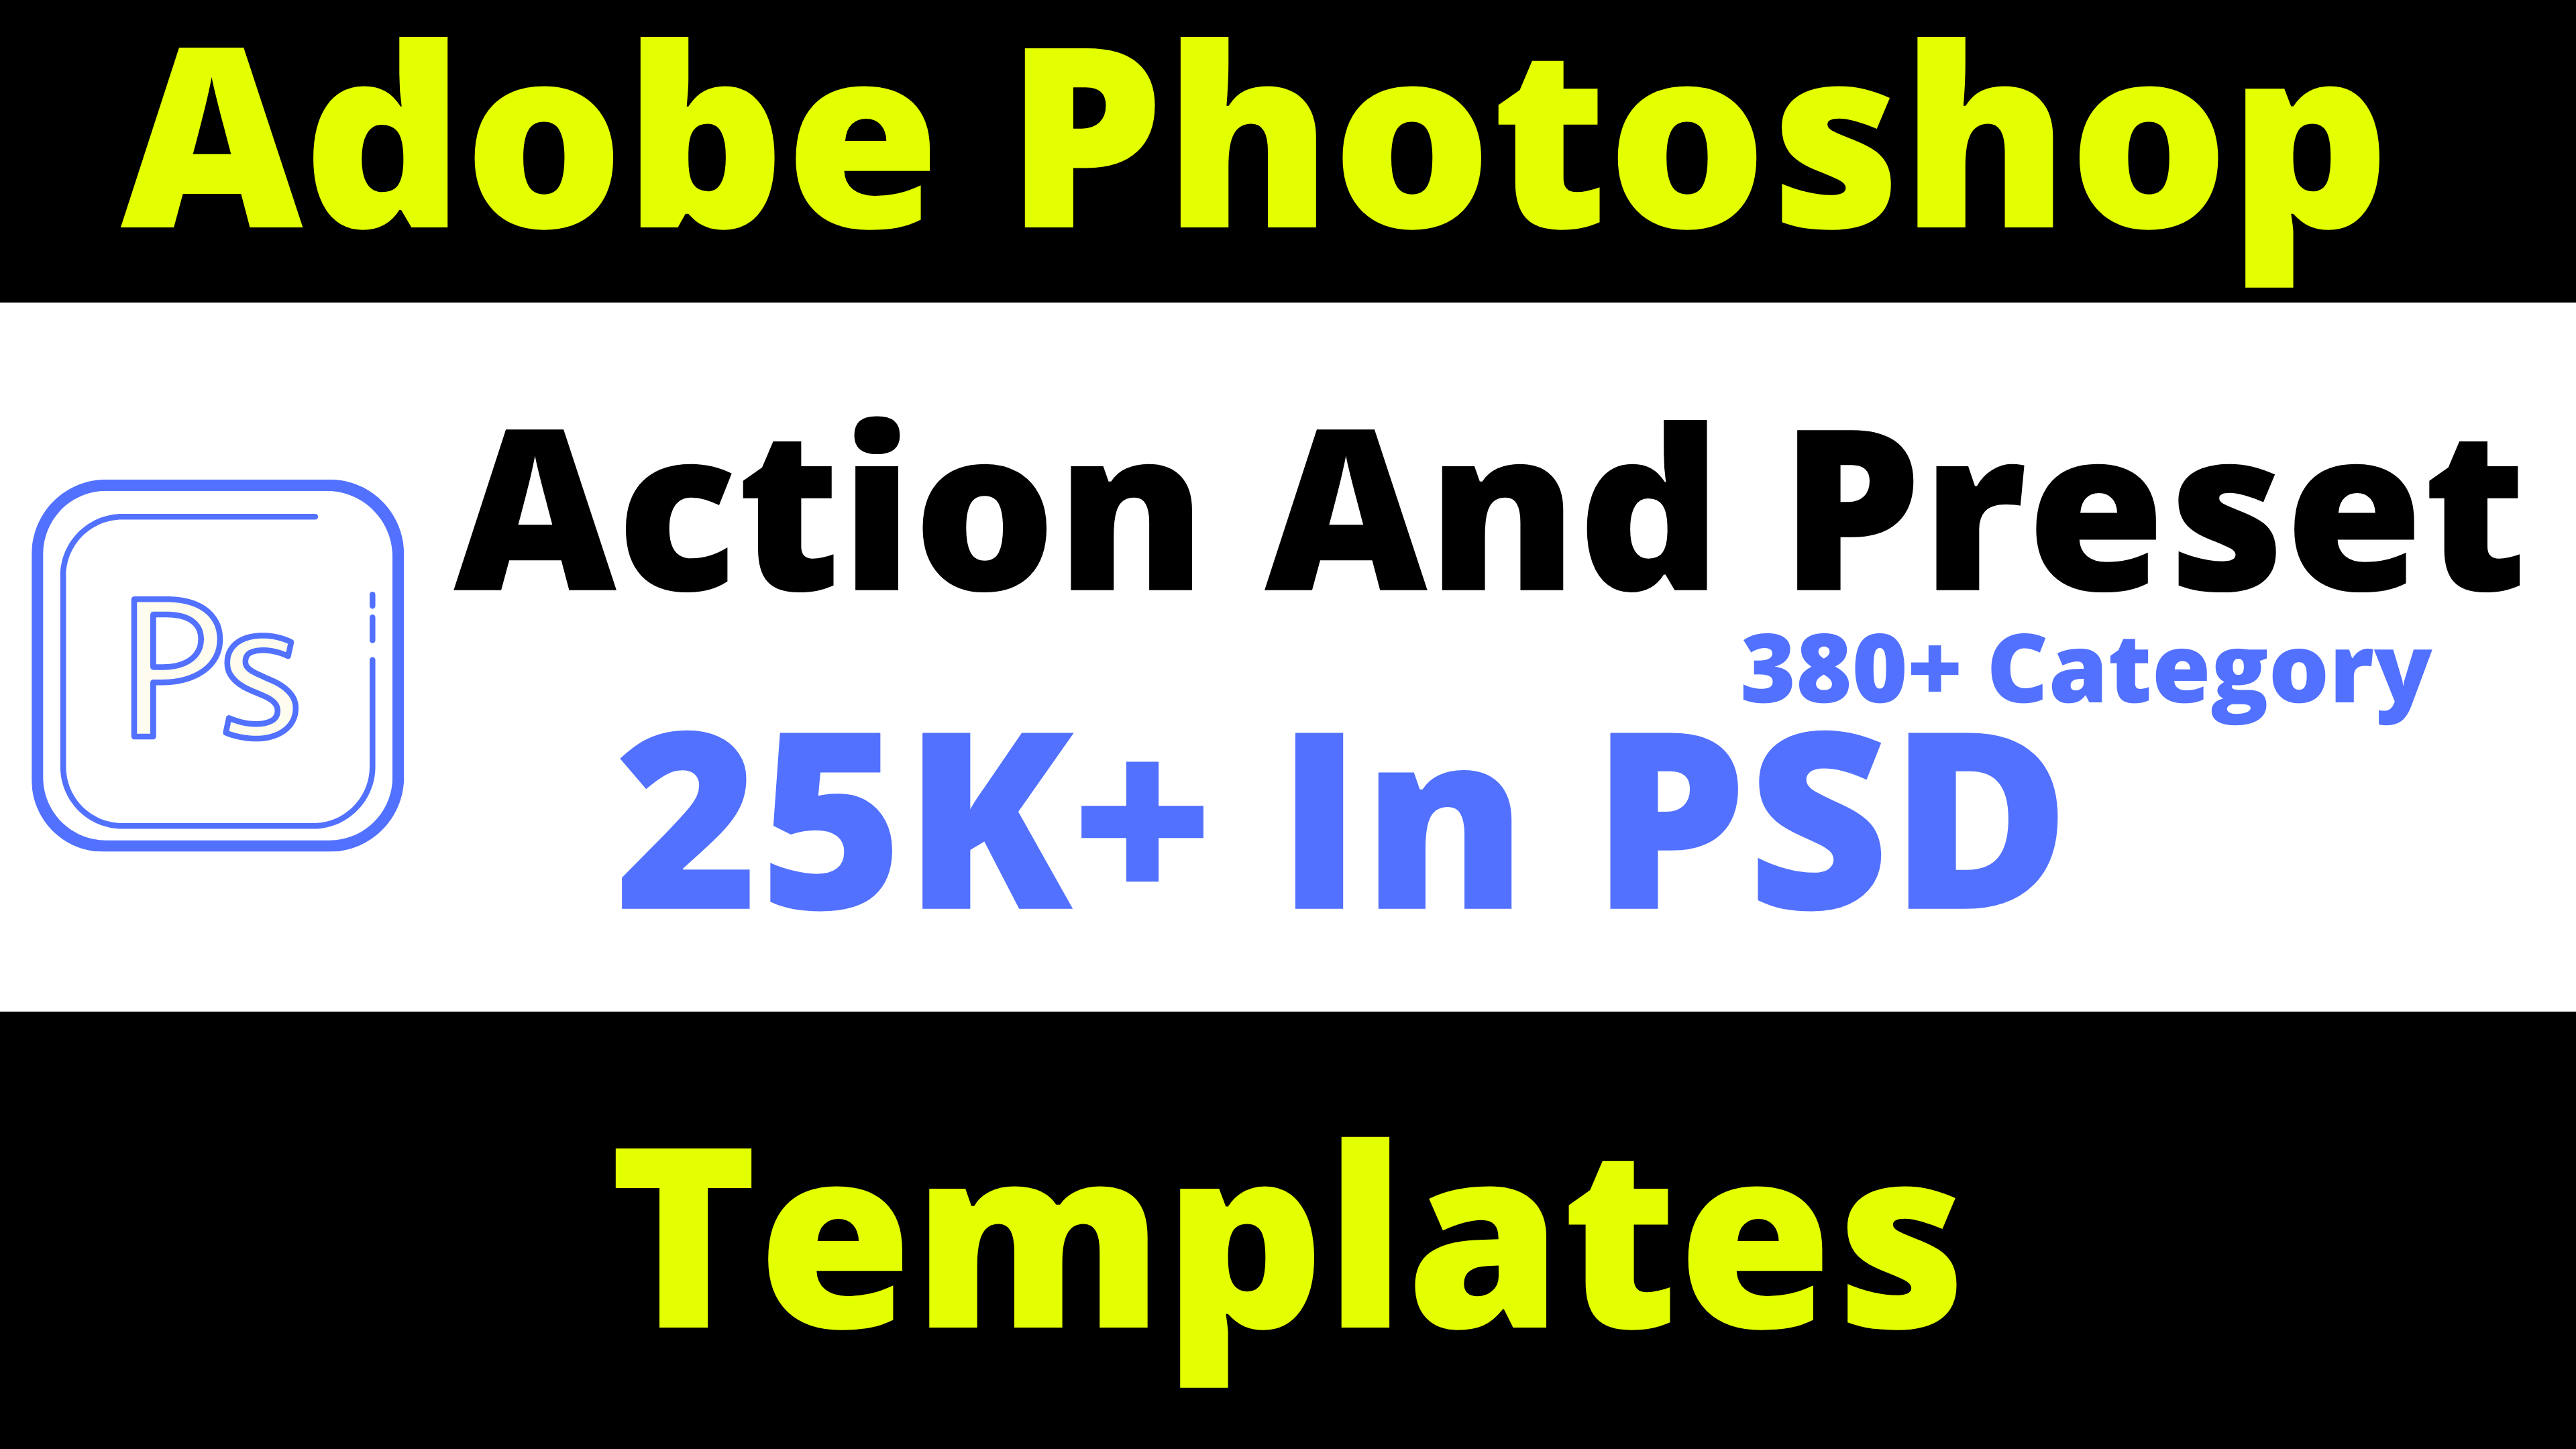 Adobe Photoshop Action And Preset 380+ Category Templates